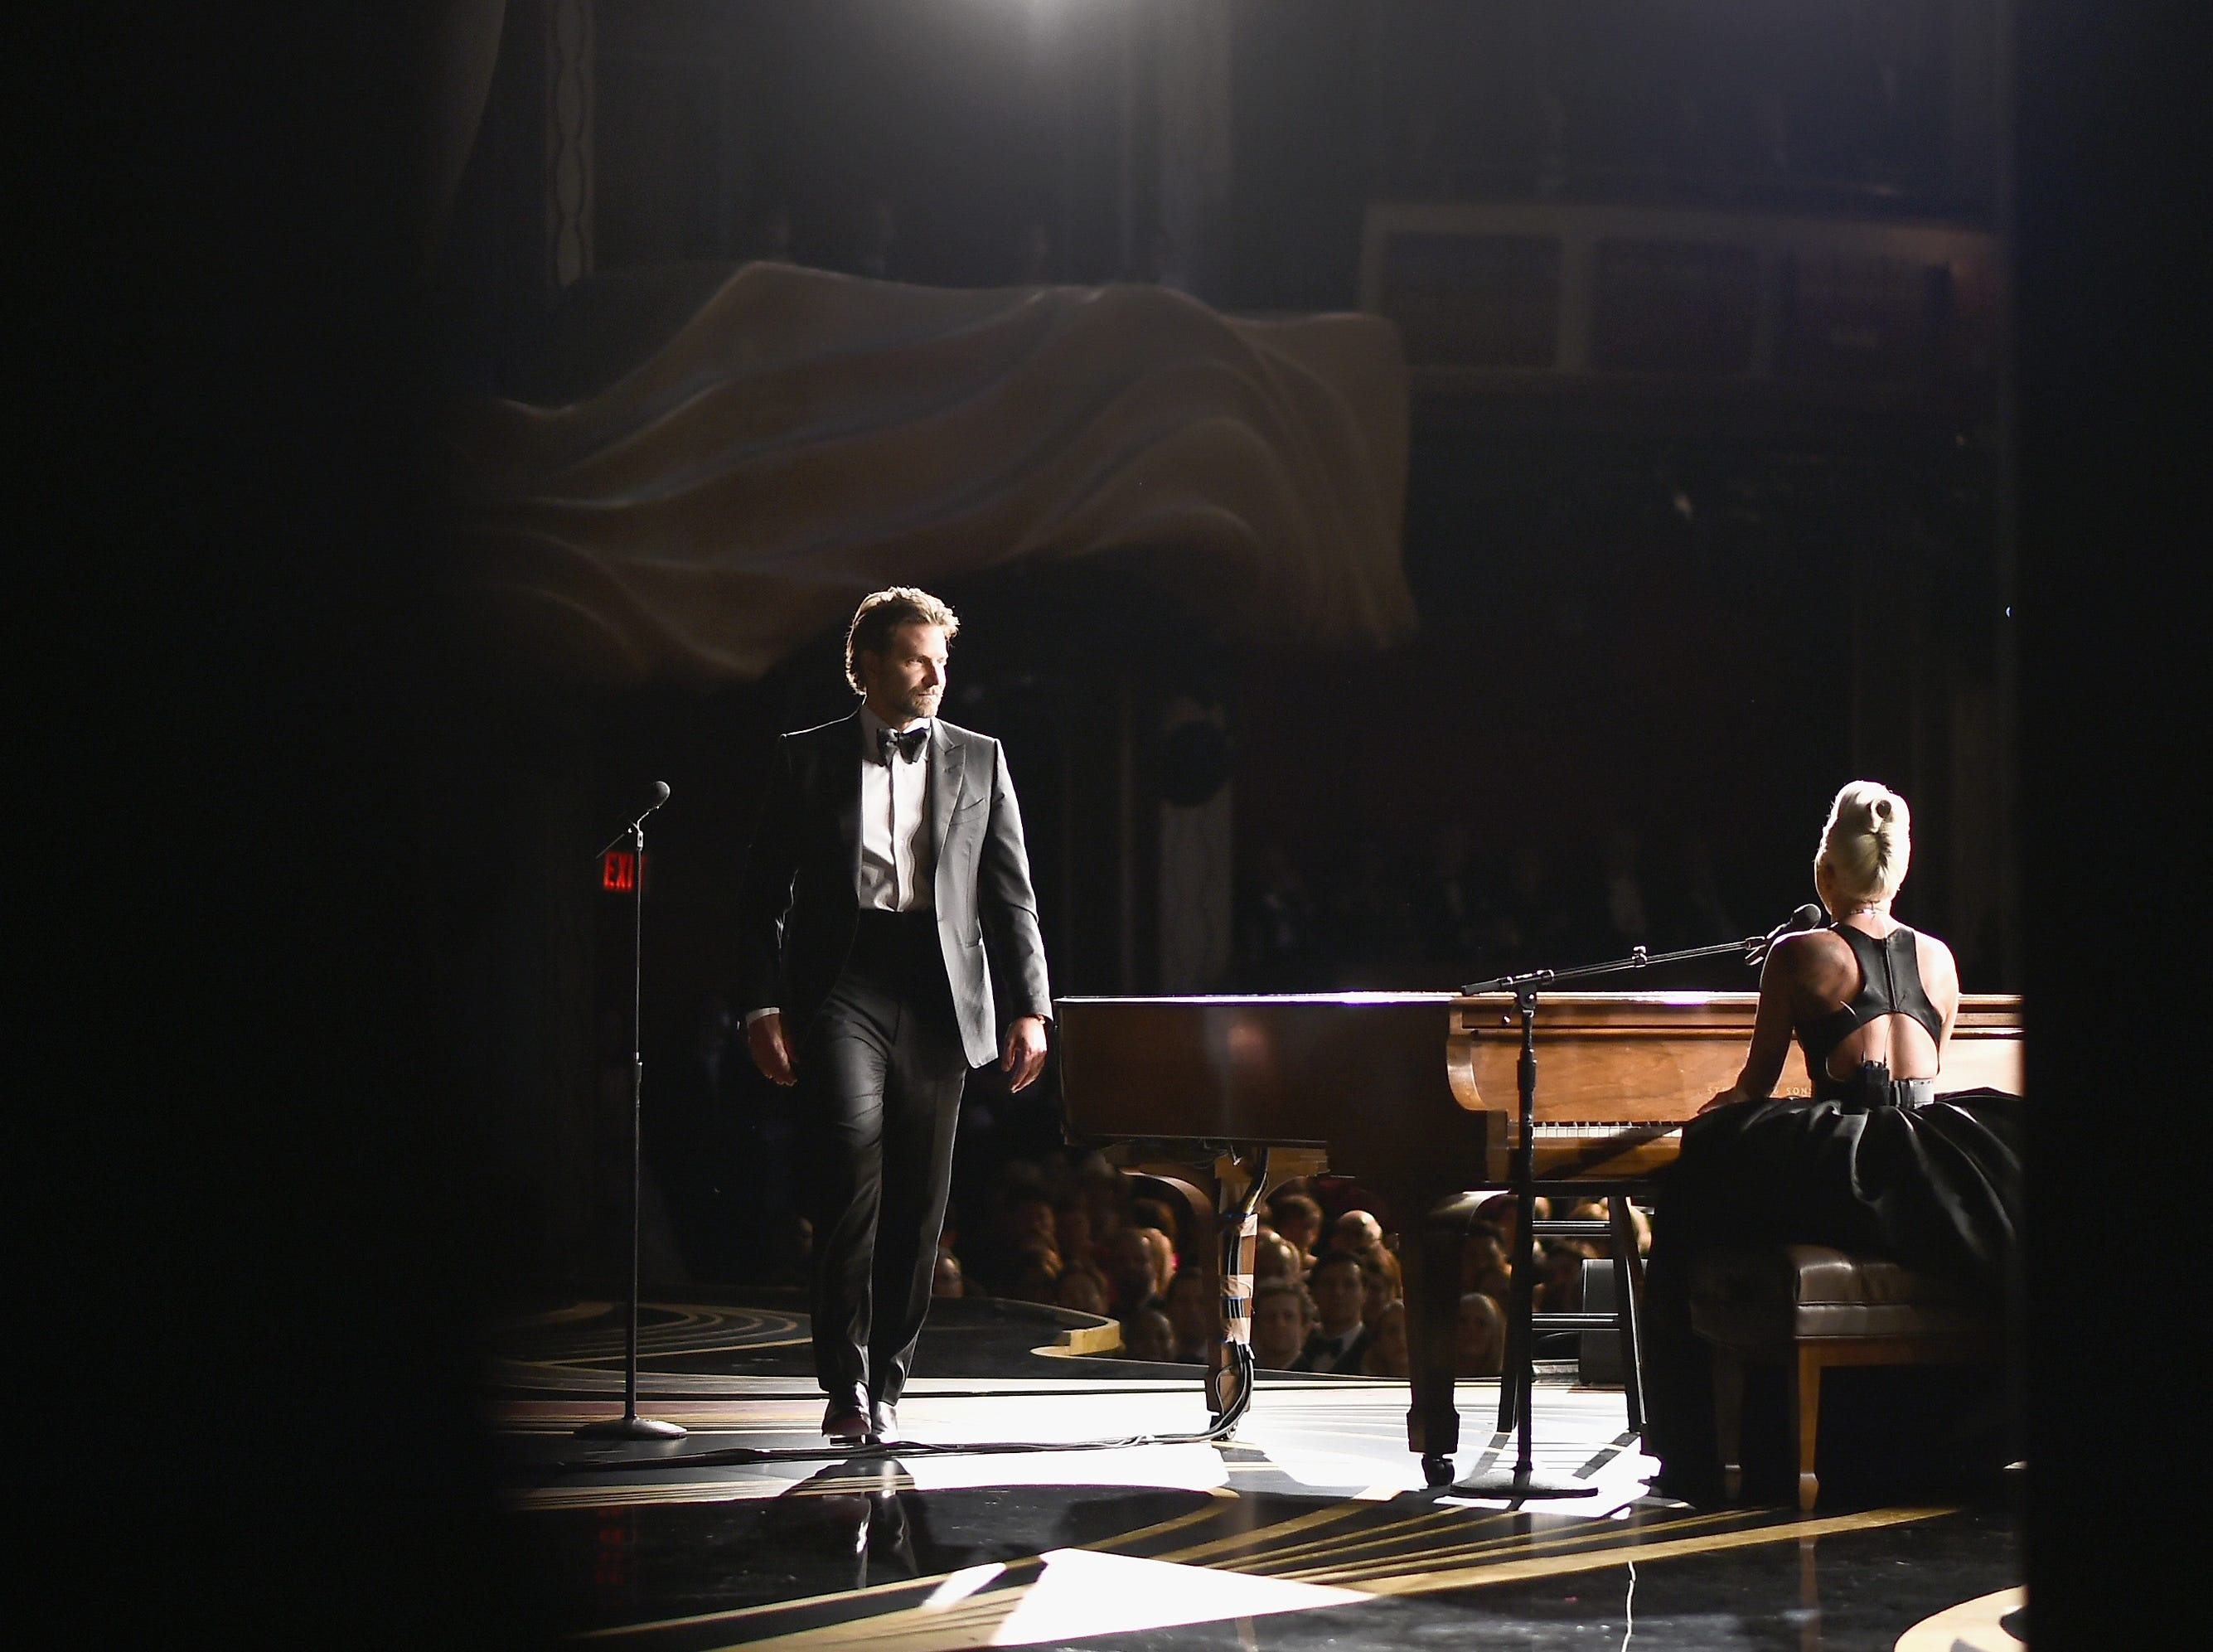 Bradley Cooper and Lady Gaga perform onstage during the 91st Annual Academy Awards at the Dolby Theatre on February 24, 2019 in Hollywood, California.